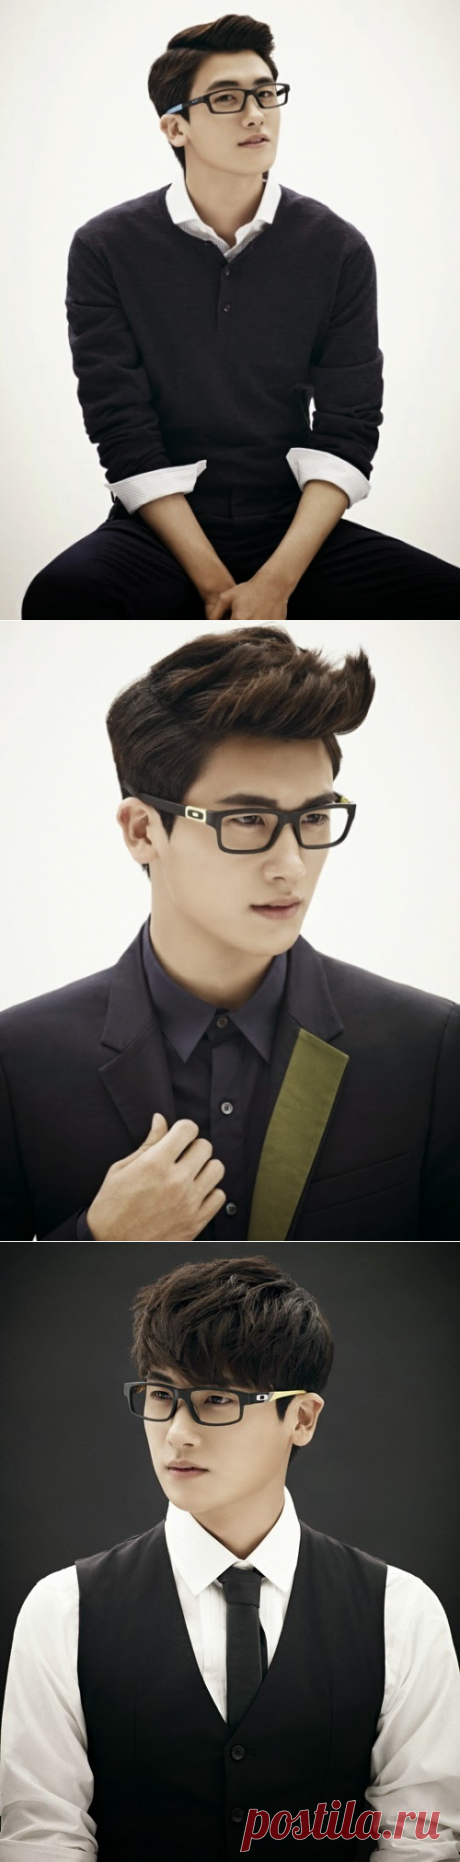 ZE: A Hyung Shik (박형식) Oakley Illustrated open